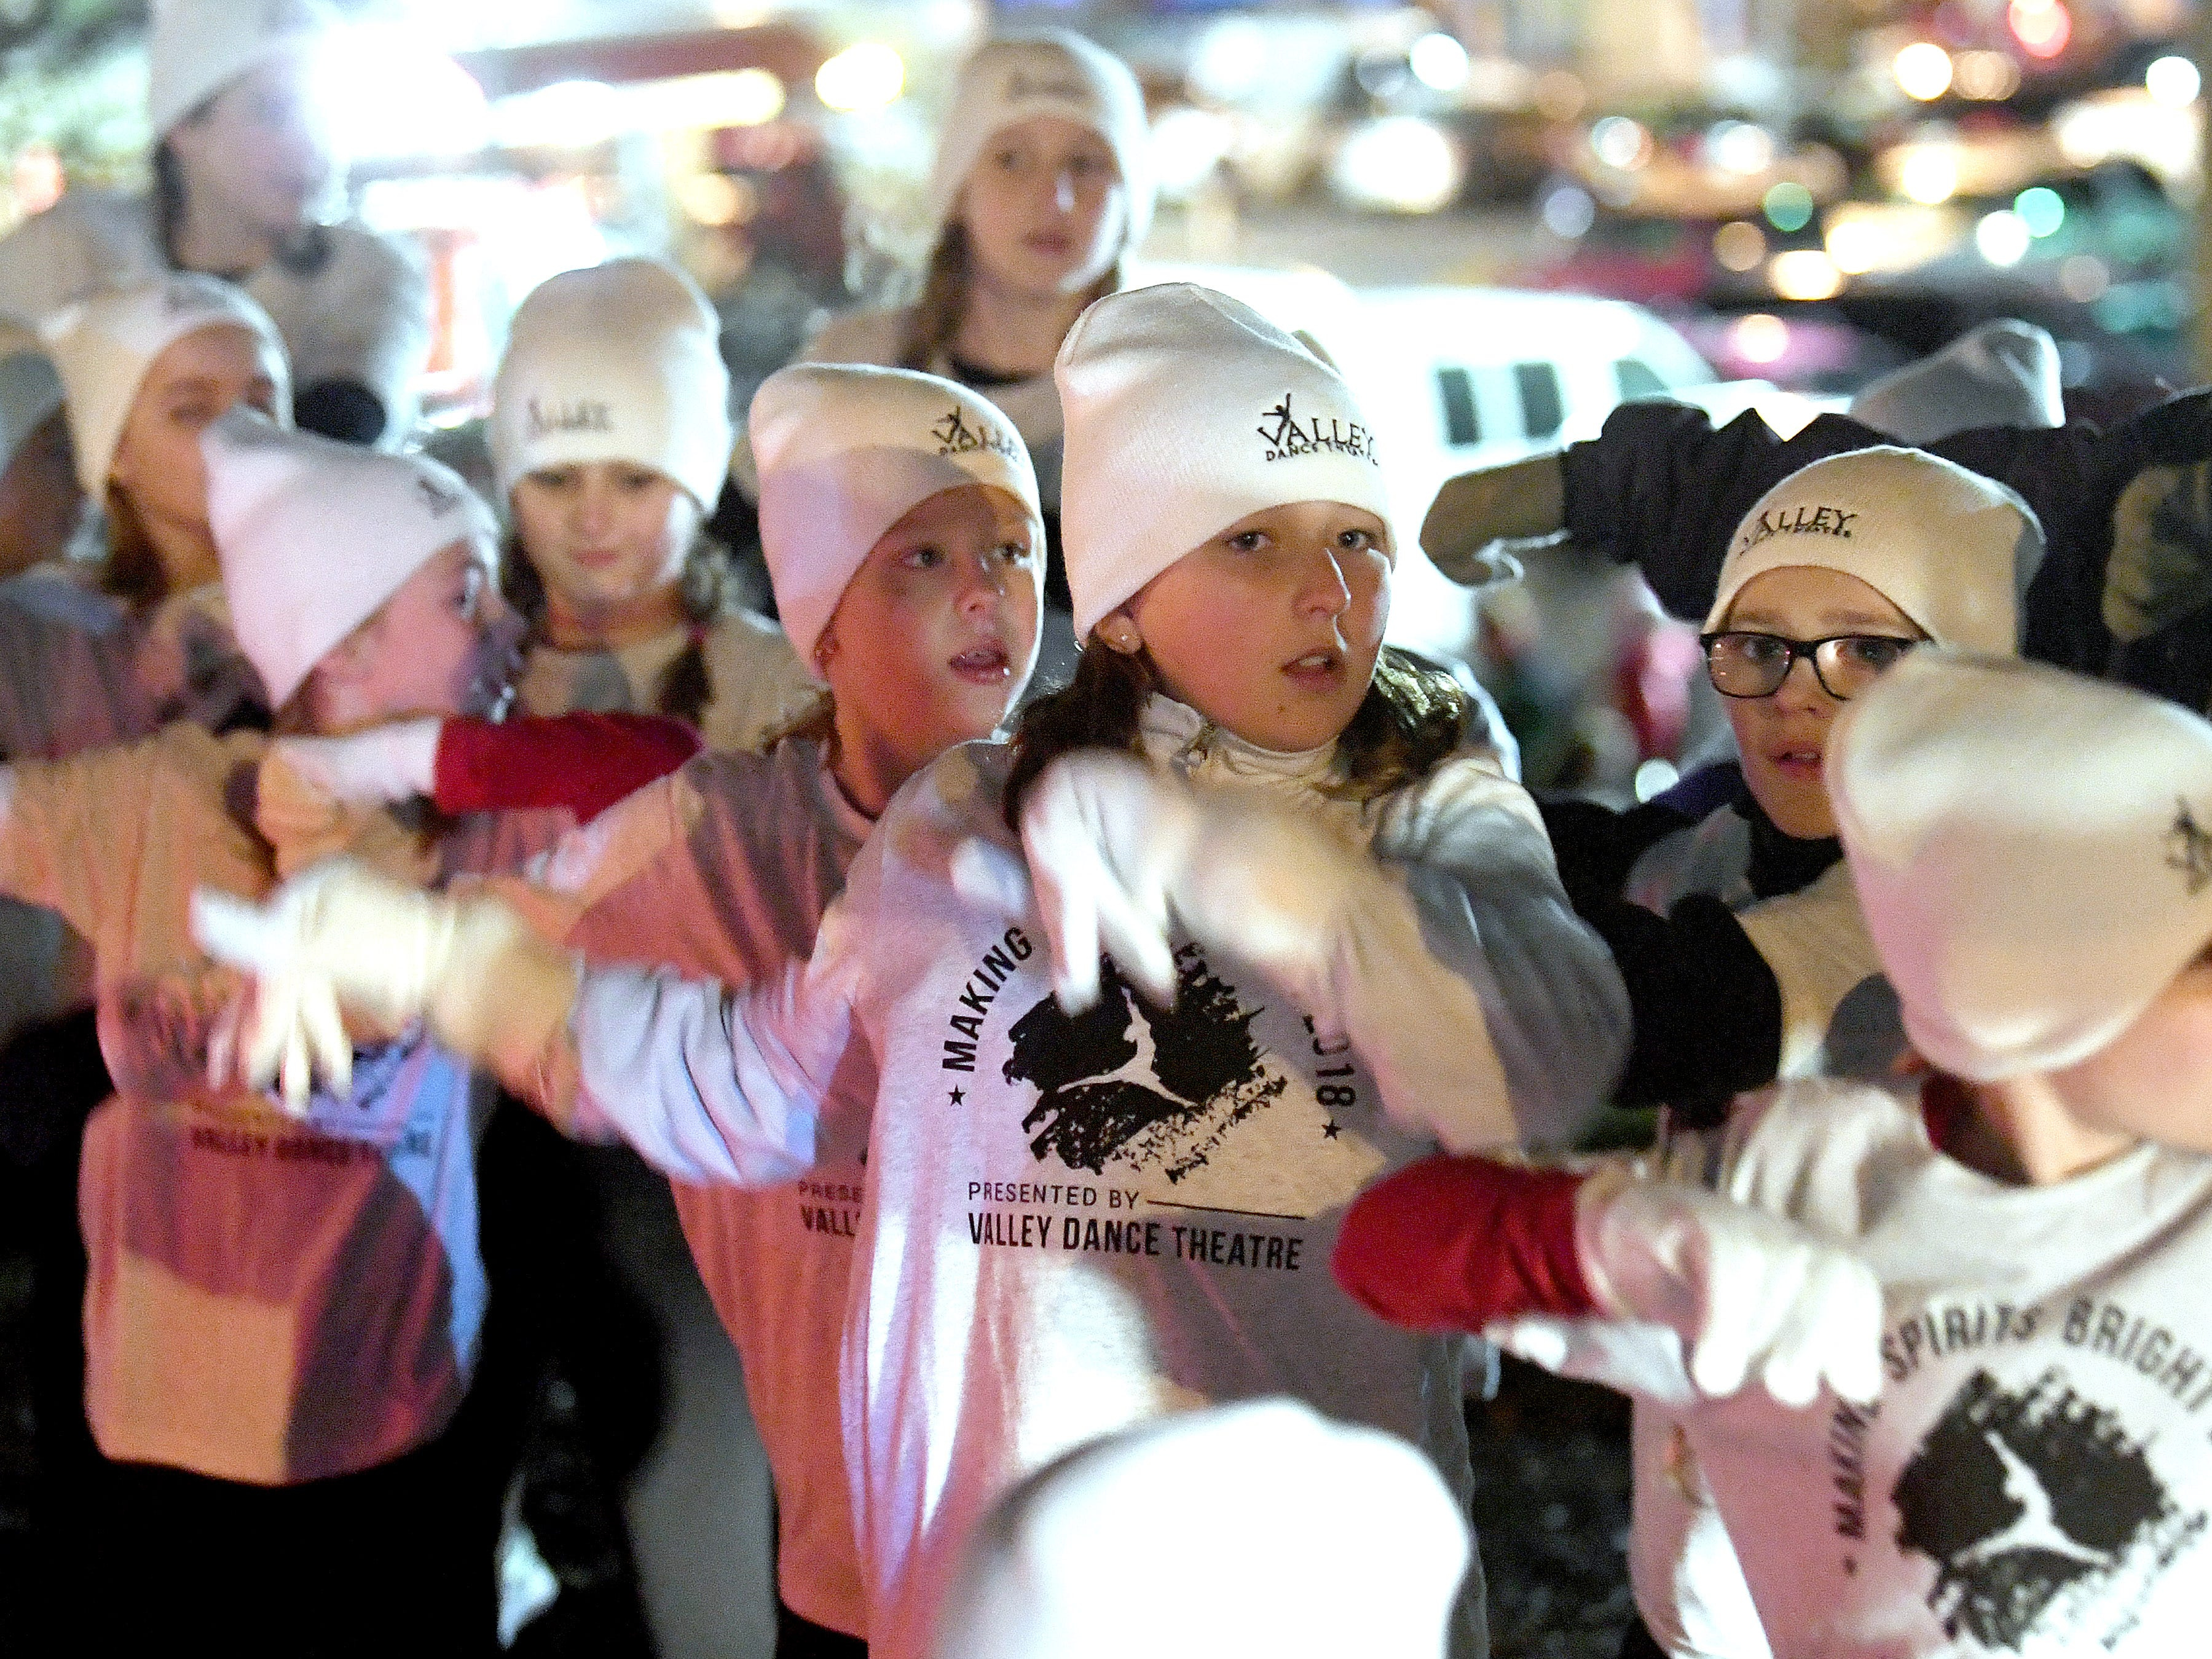 Dancers rehearse their moves while waiting for the Staunton Christmas Parade to begin on Monday, Nov. 26, 2018.